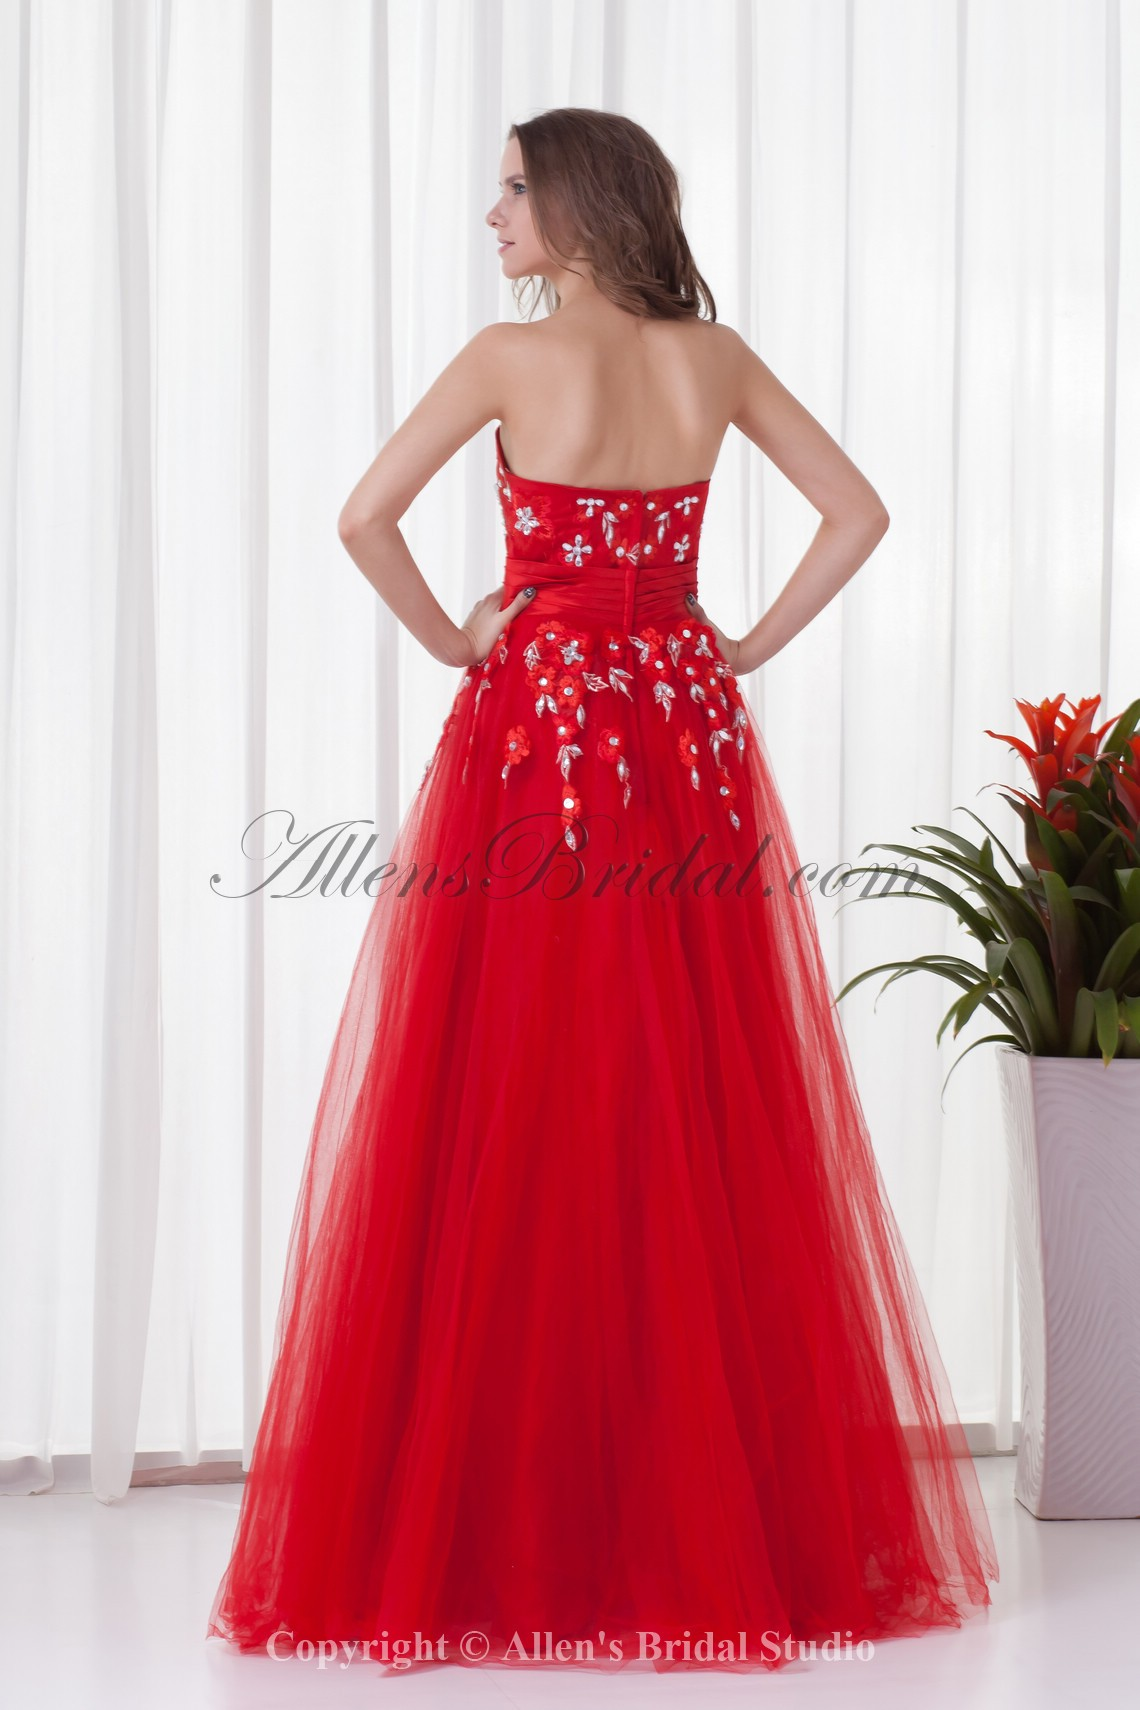 /275-2201/net-and-satin-sweetheart-a-line-floor-length-crystals-prom-dress.jpg